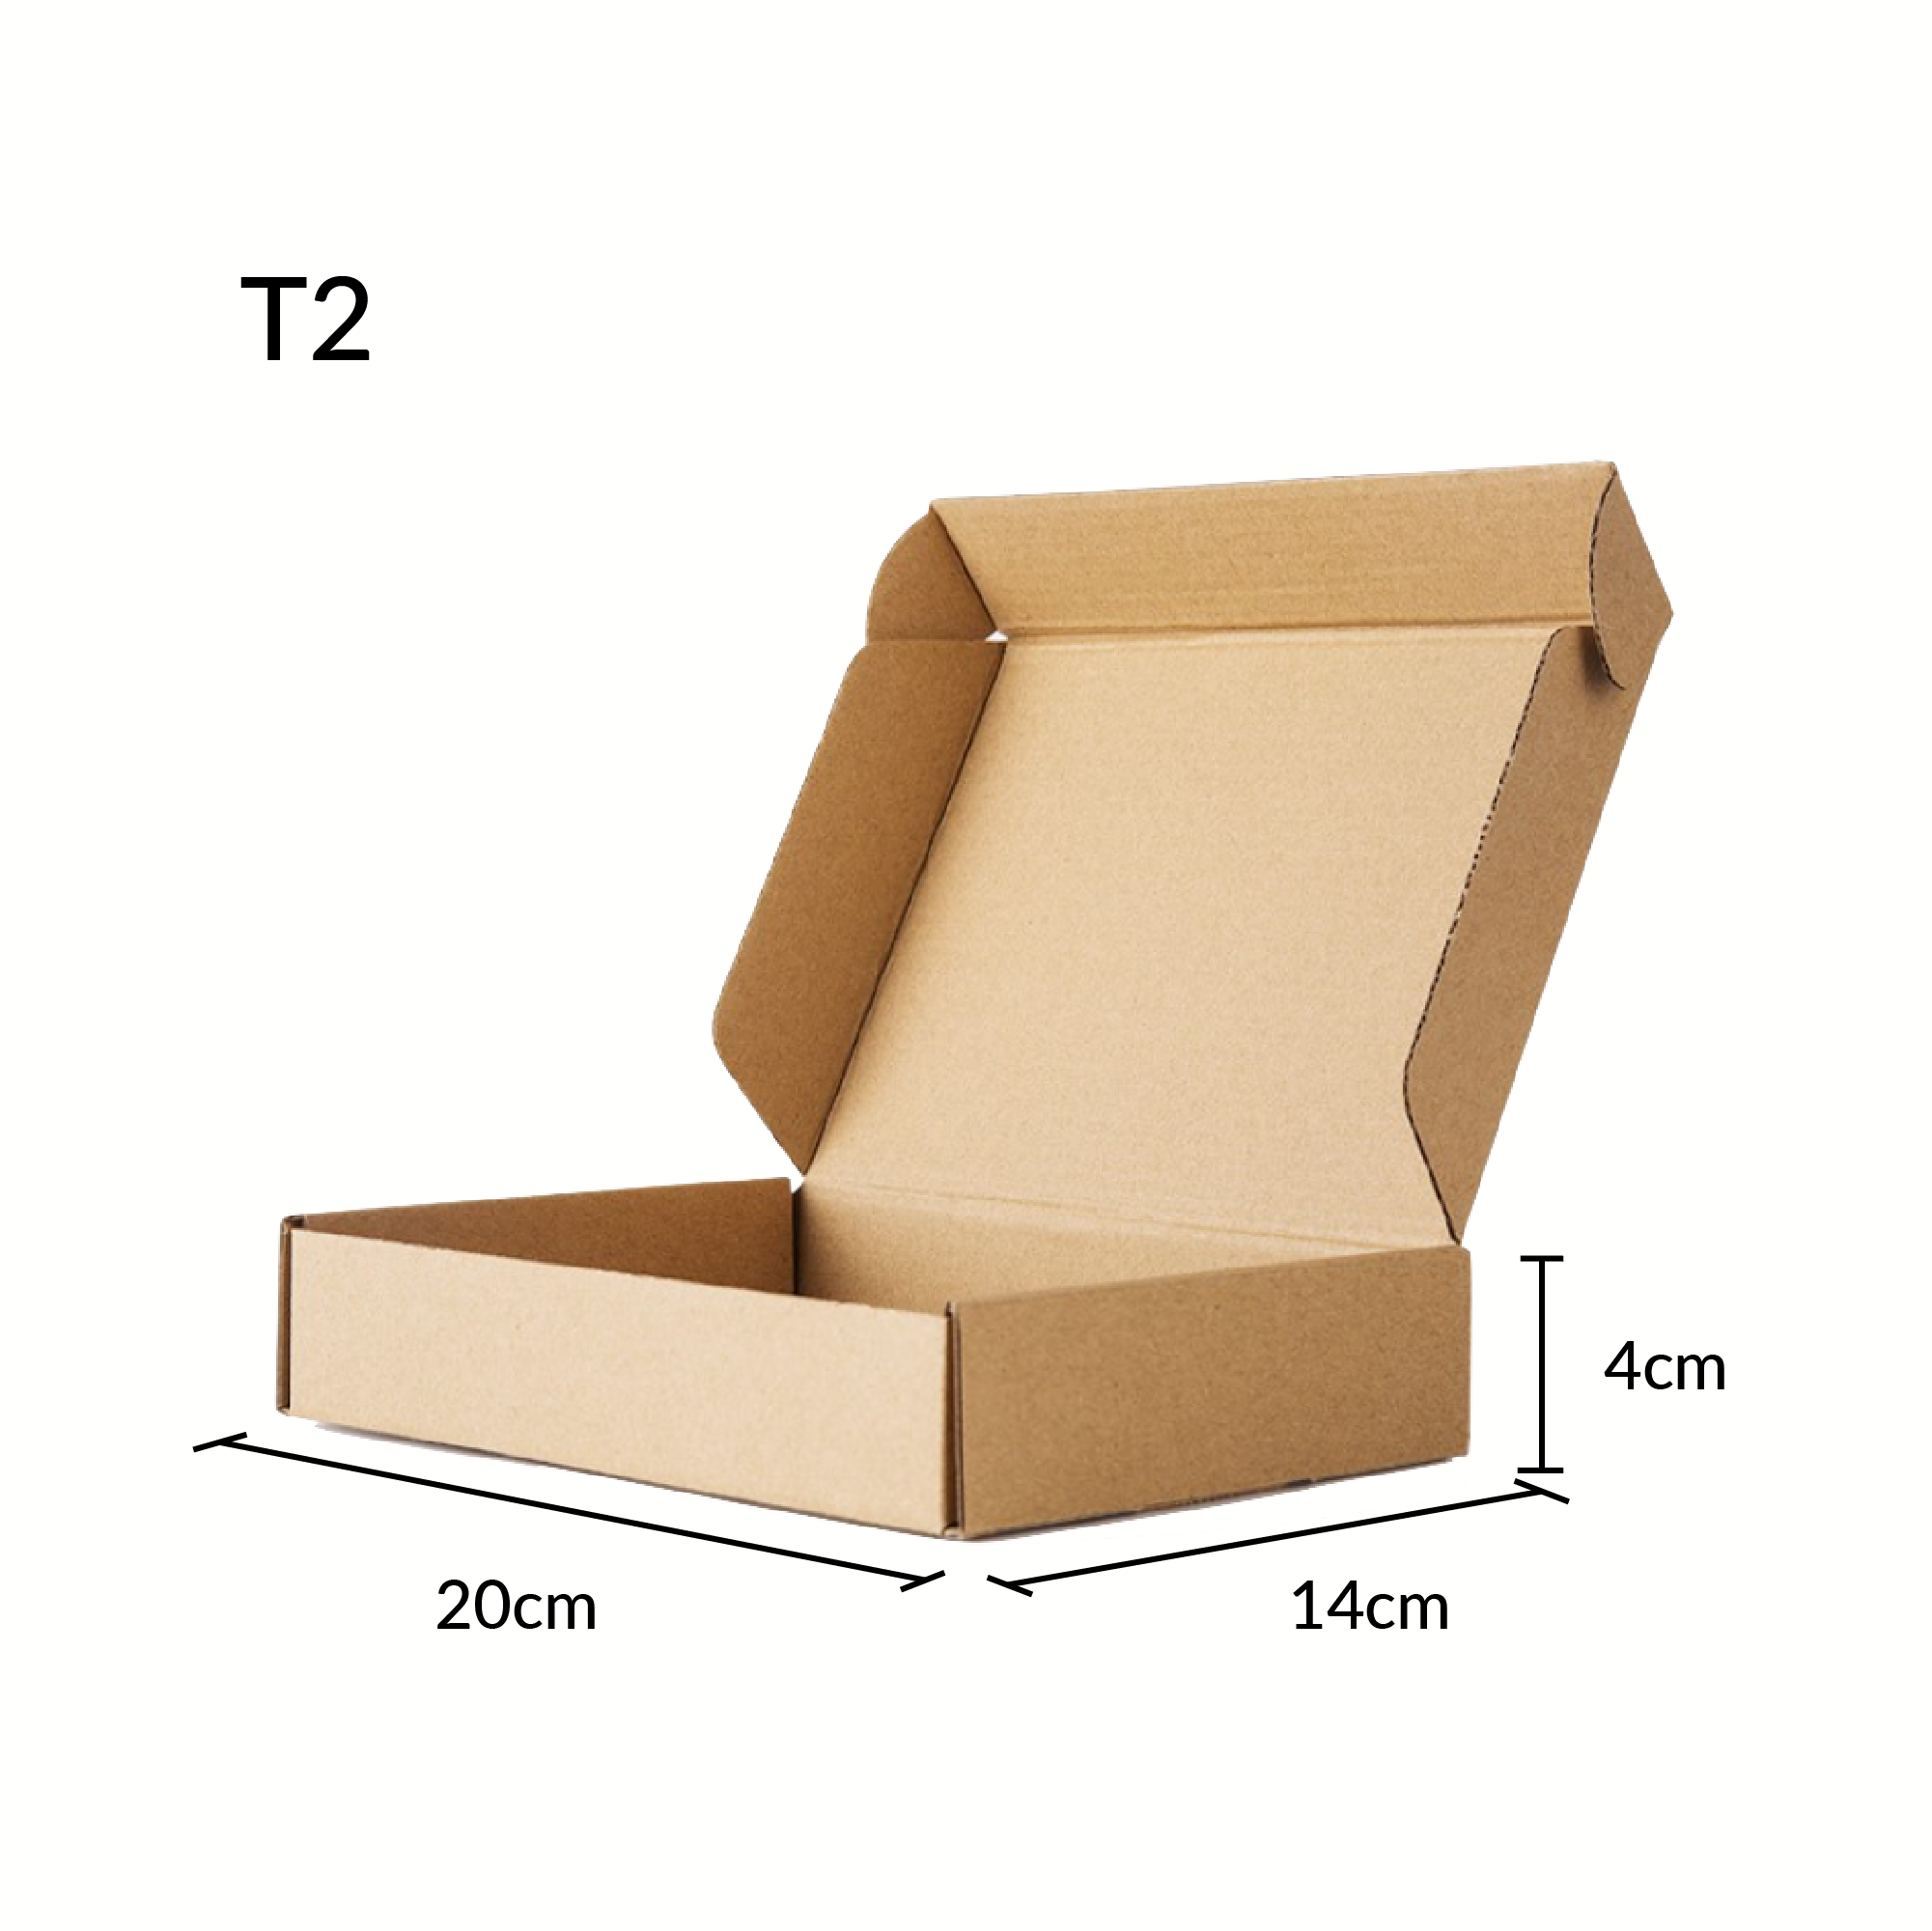 [MY] EasyParcel Shop - carton box and paper craft box-02.png